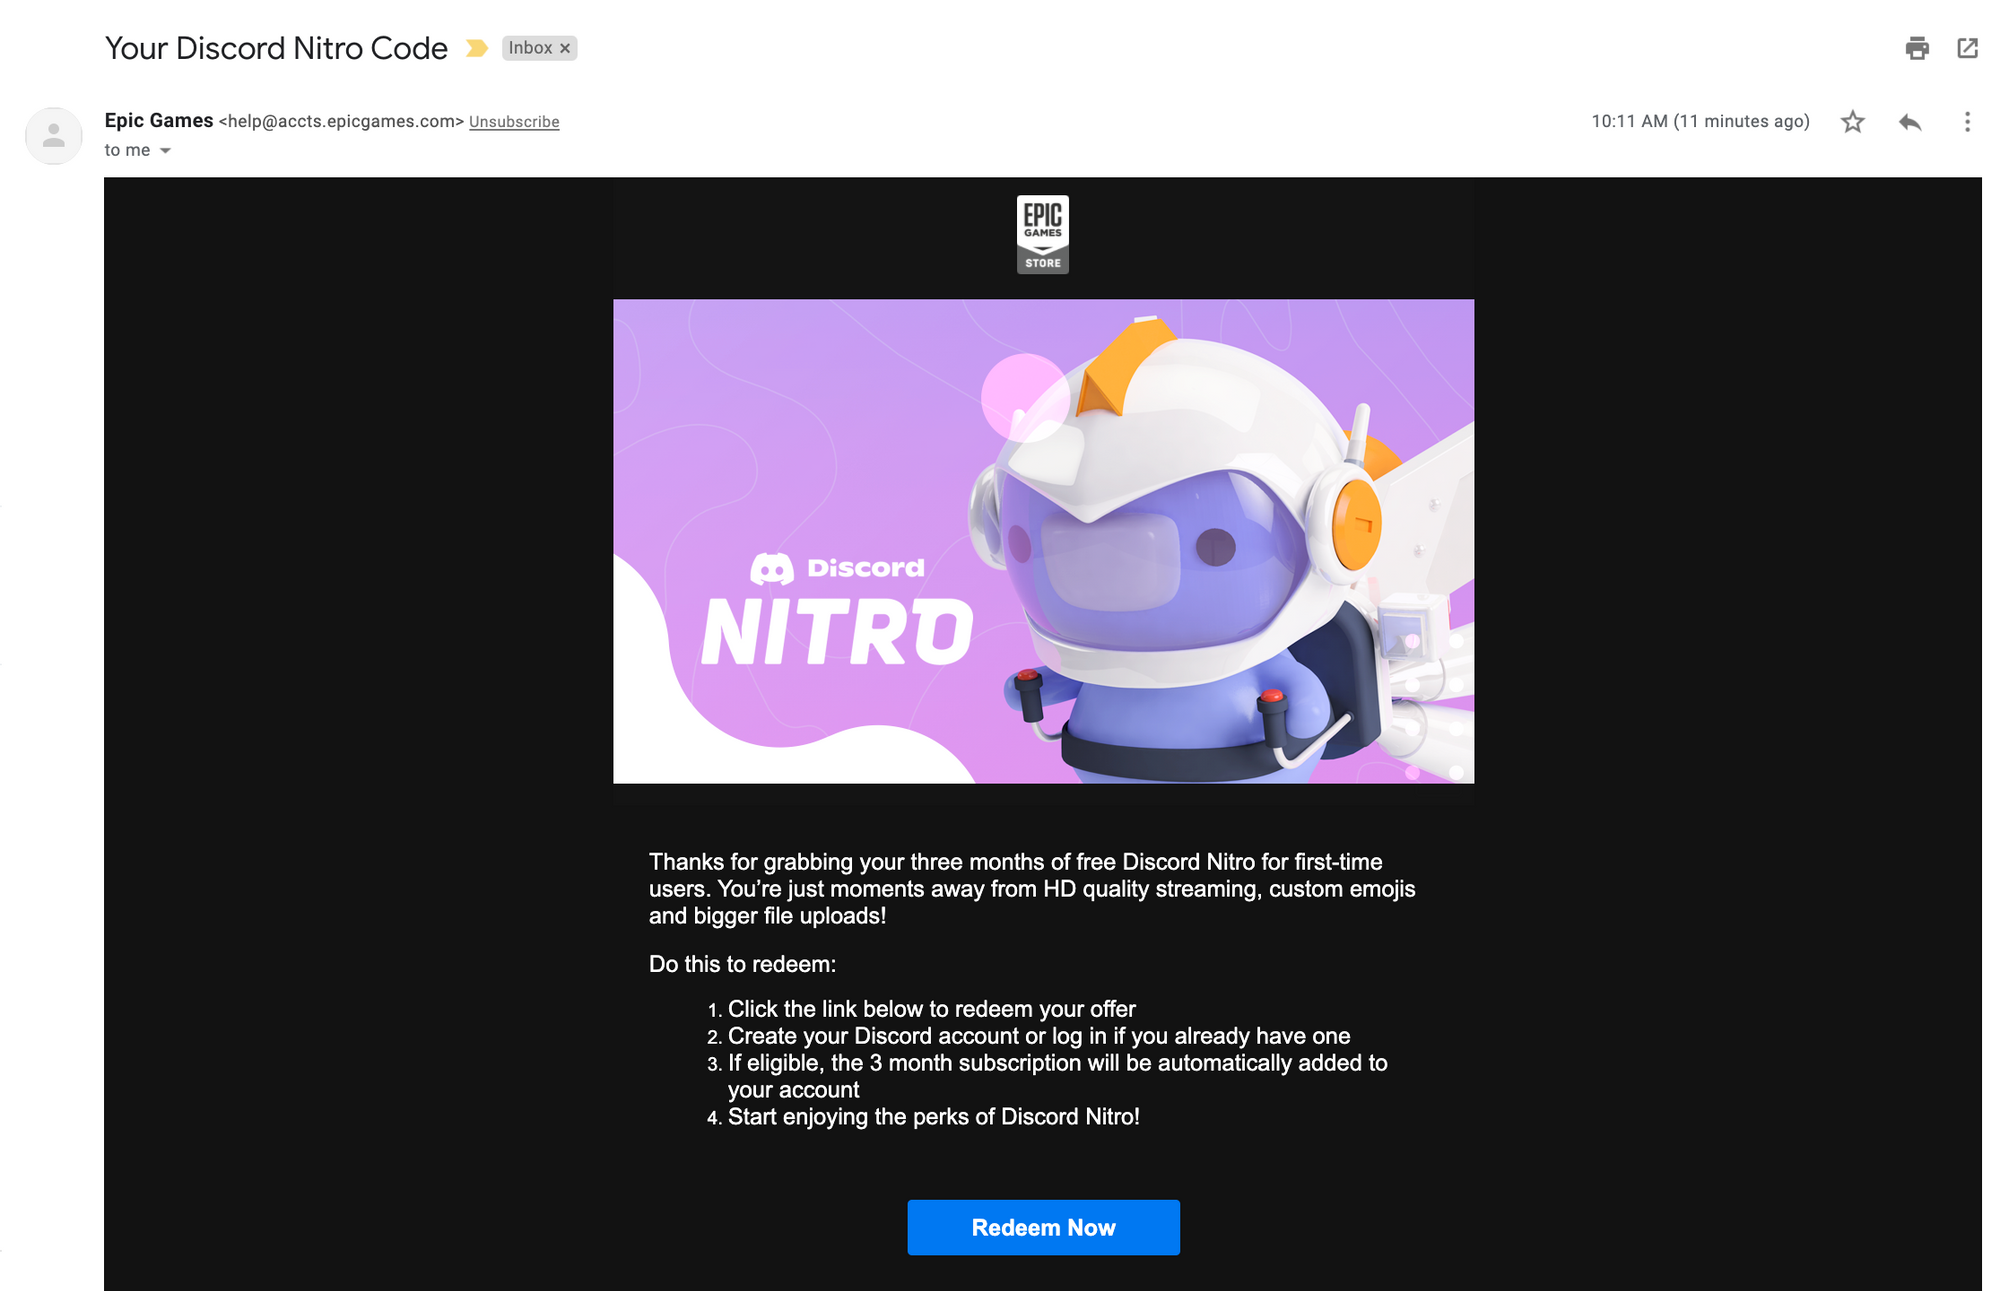 A screenshot of the email offer for free Discord Nitro.